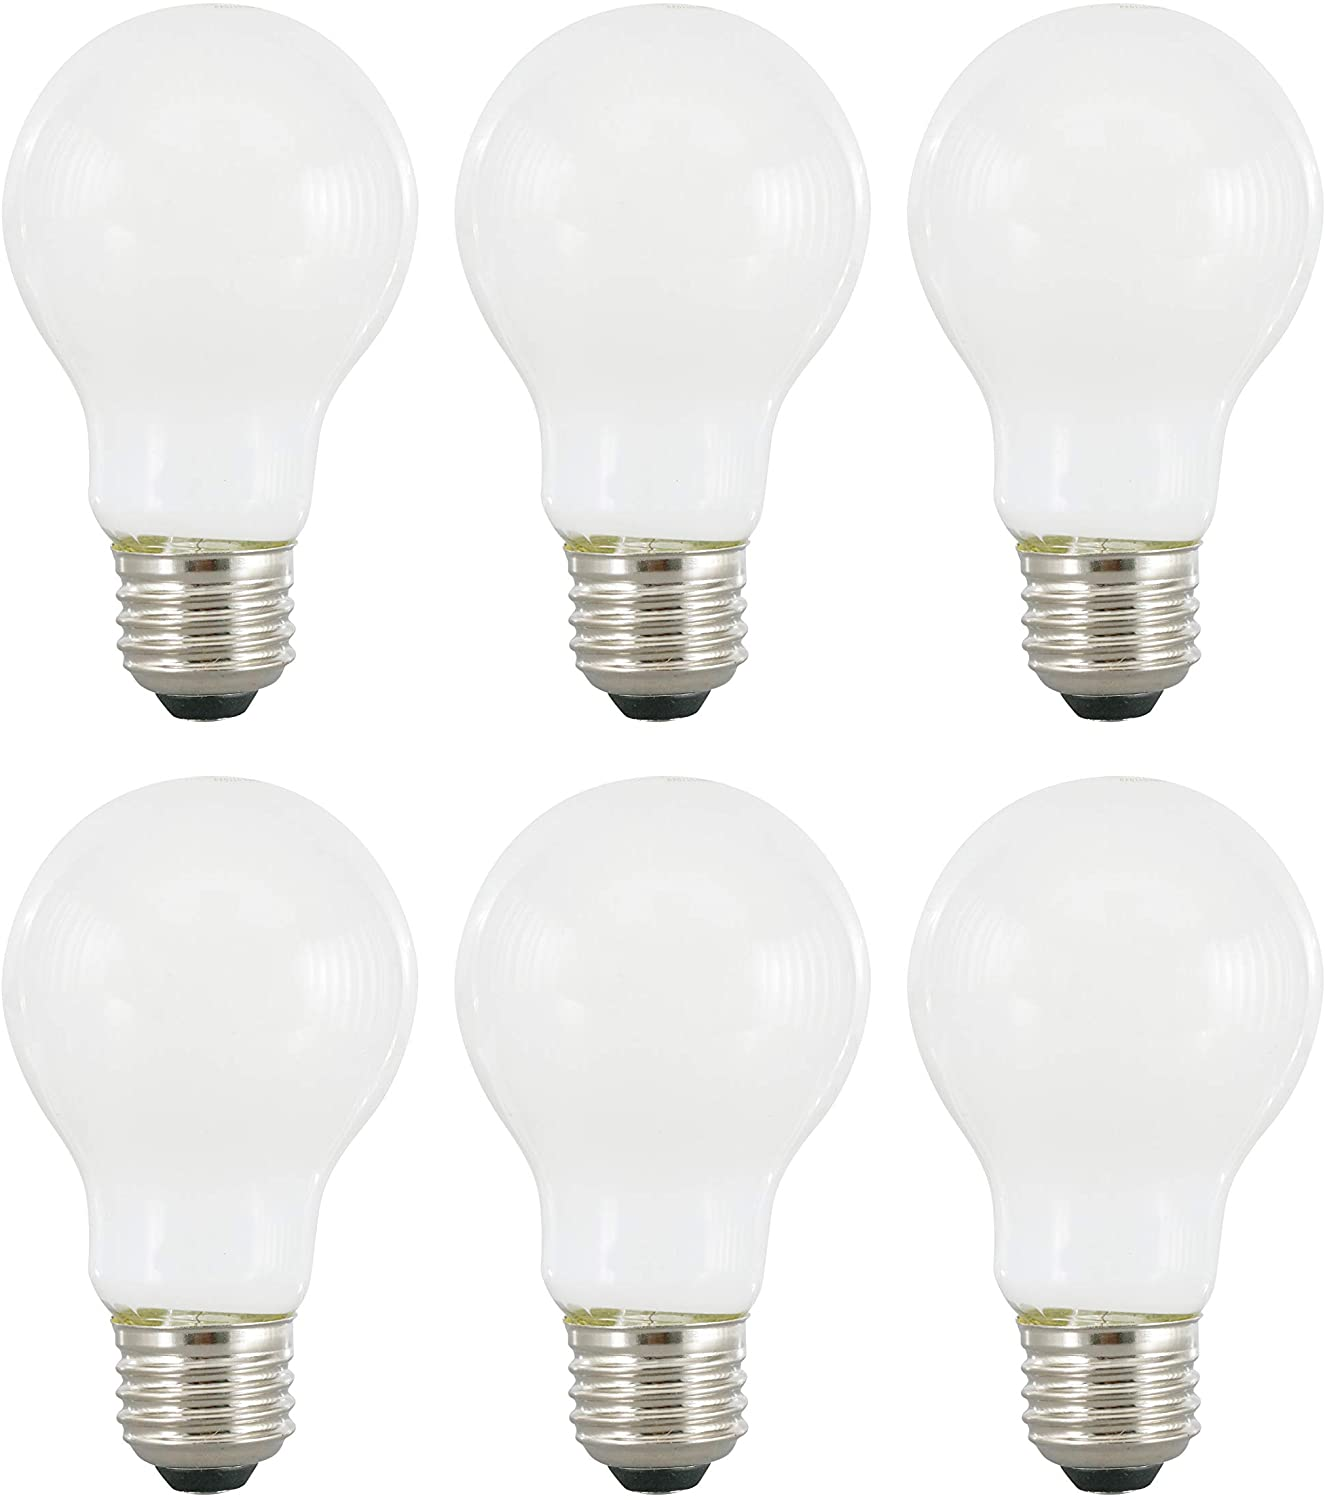 SYLVANIA LED TruWave Natural Series Equivale Sales 60W Ranking TOP10 Light Bulb A19